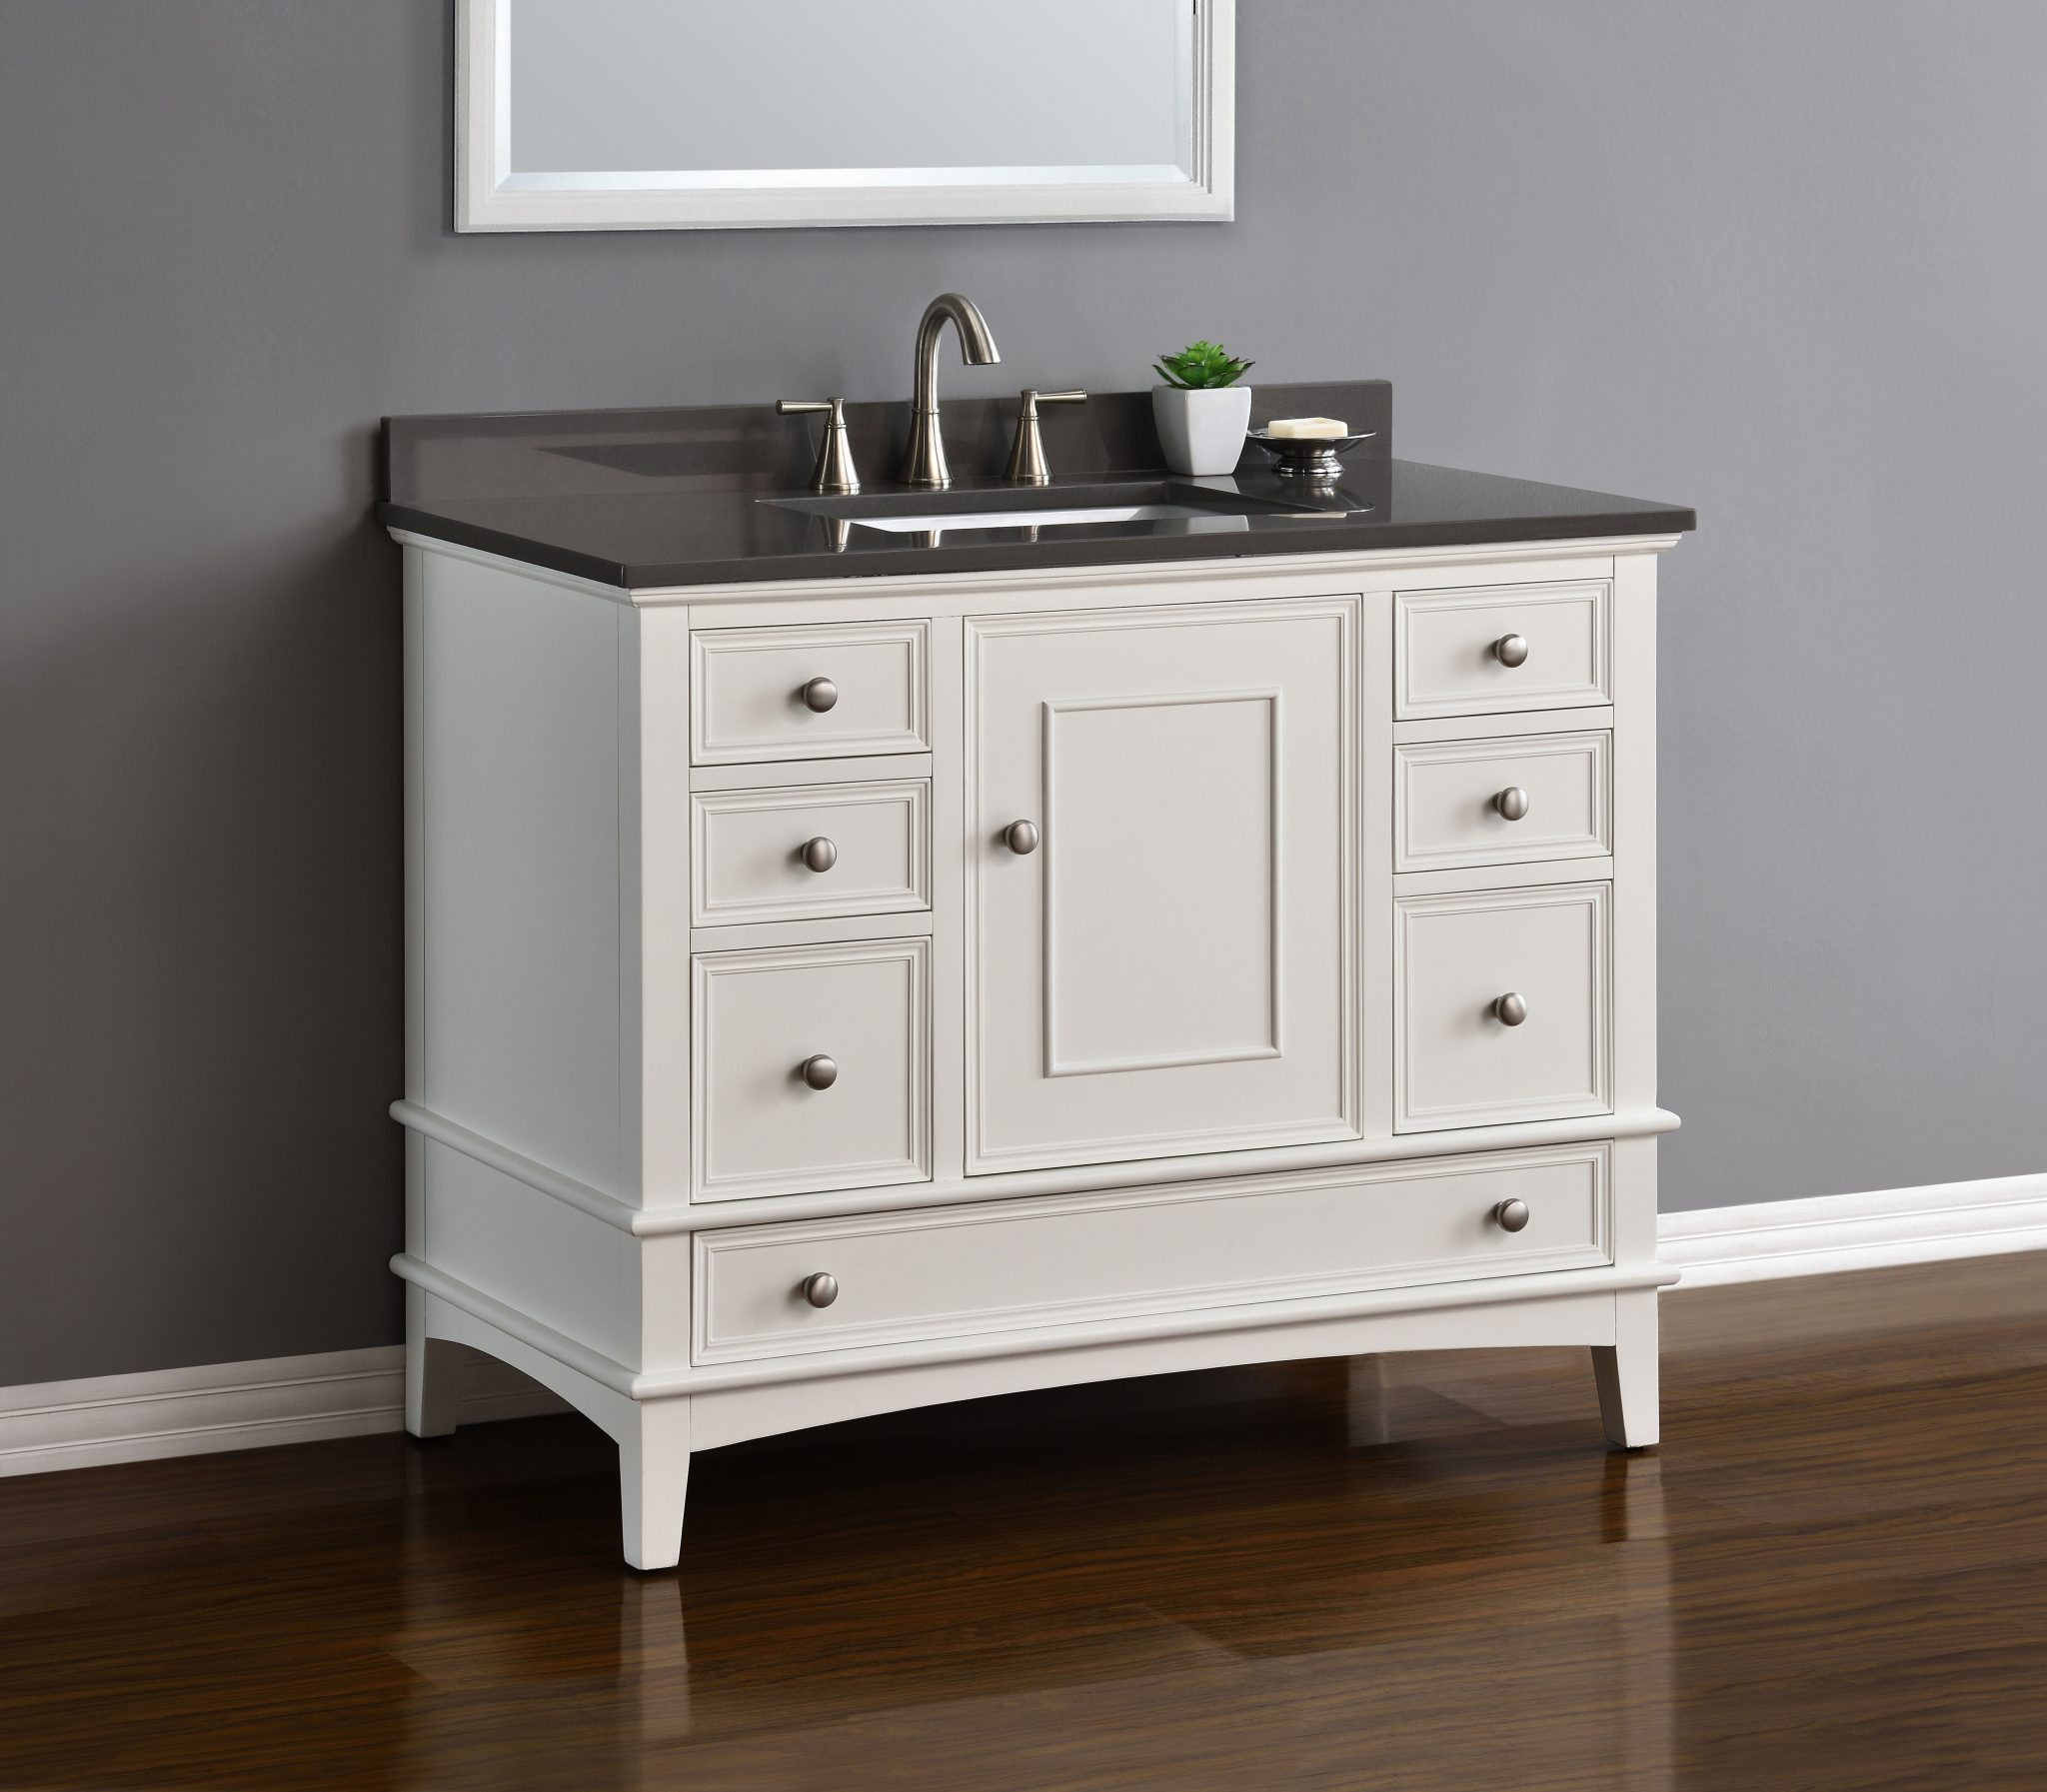 sink london finish element in com vanity single set design dp white w amazon